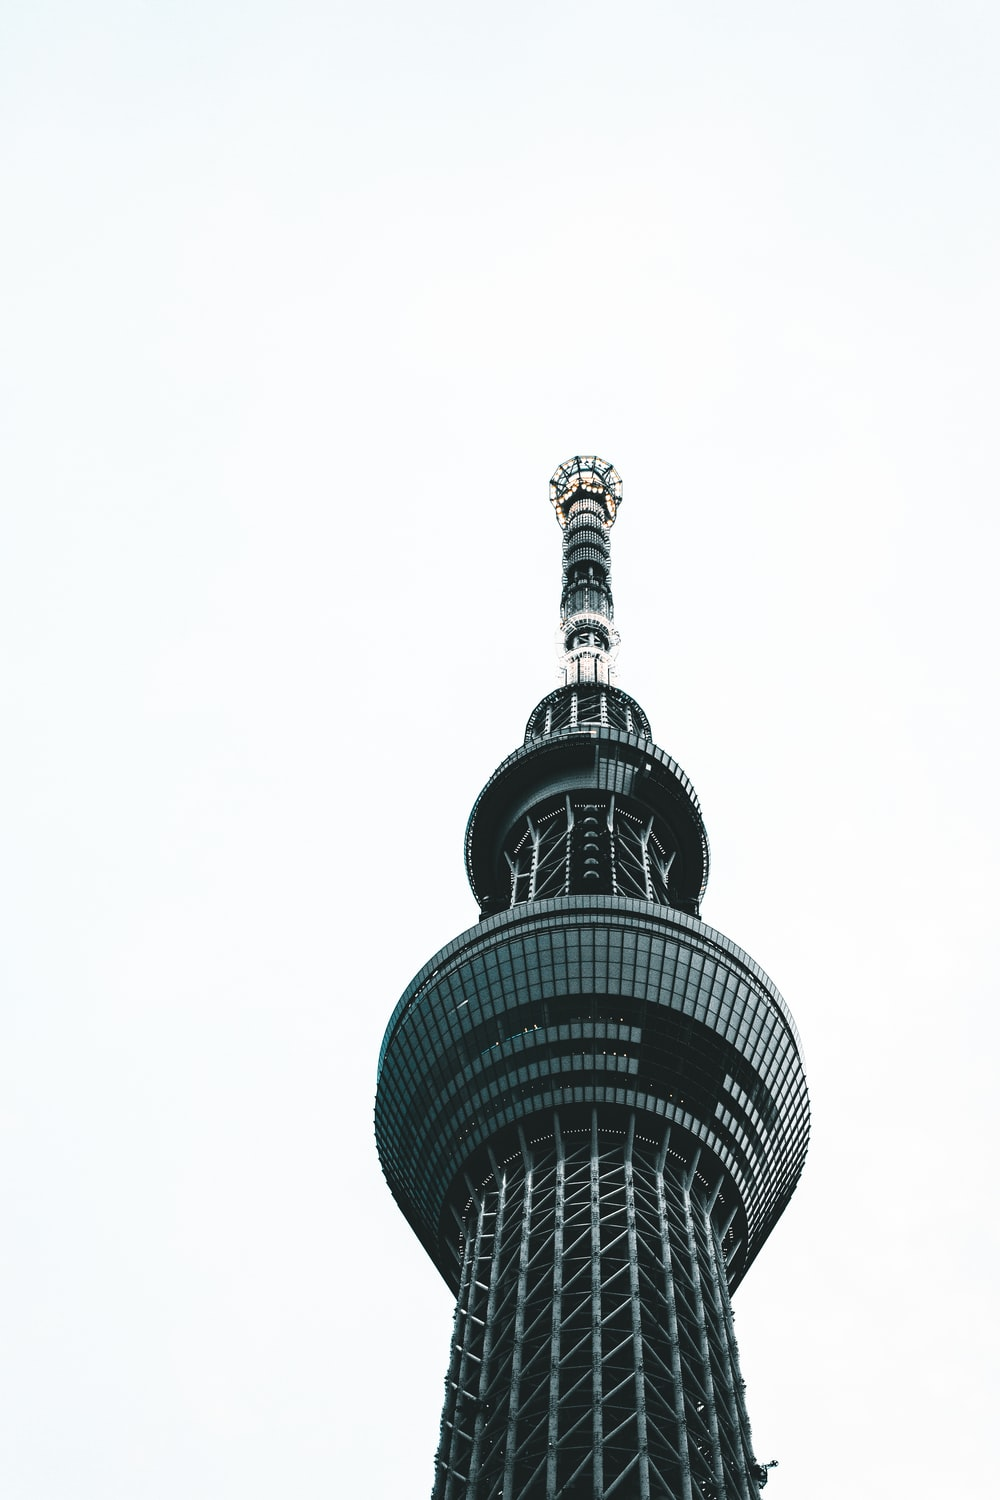 black and white tower under white sky